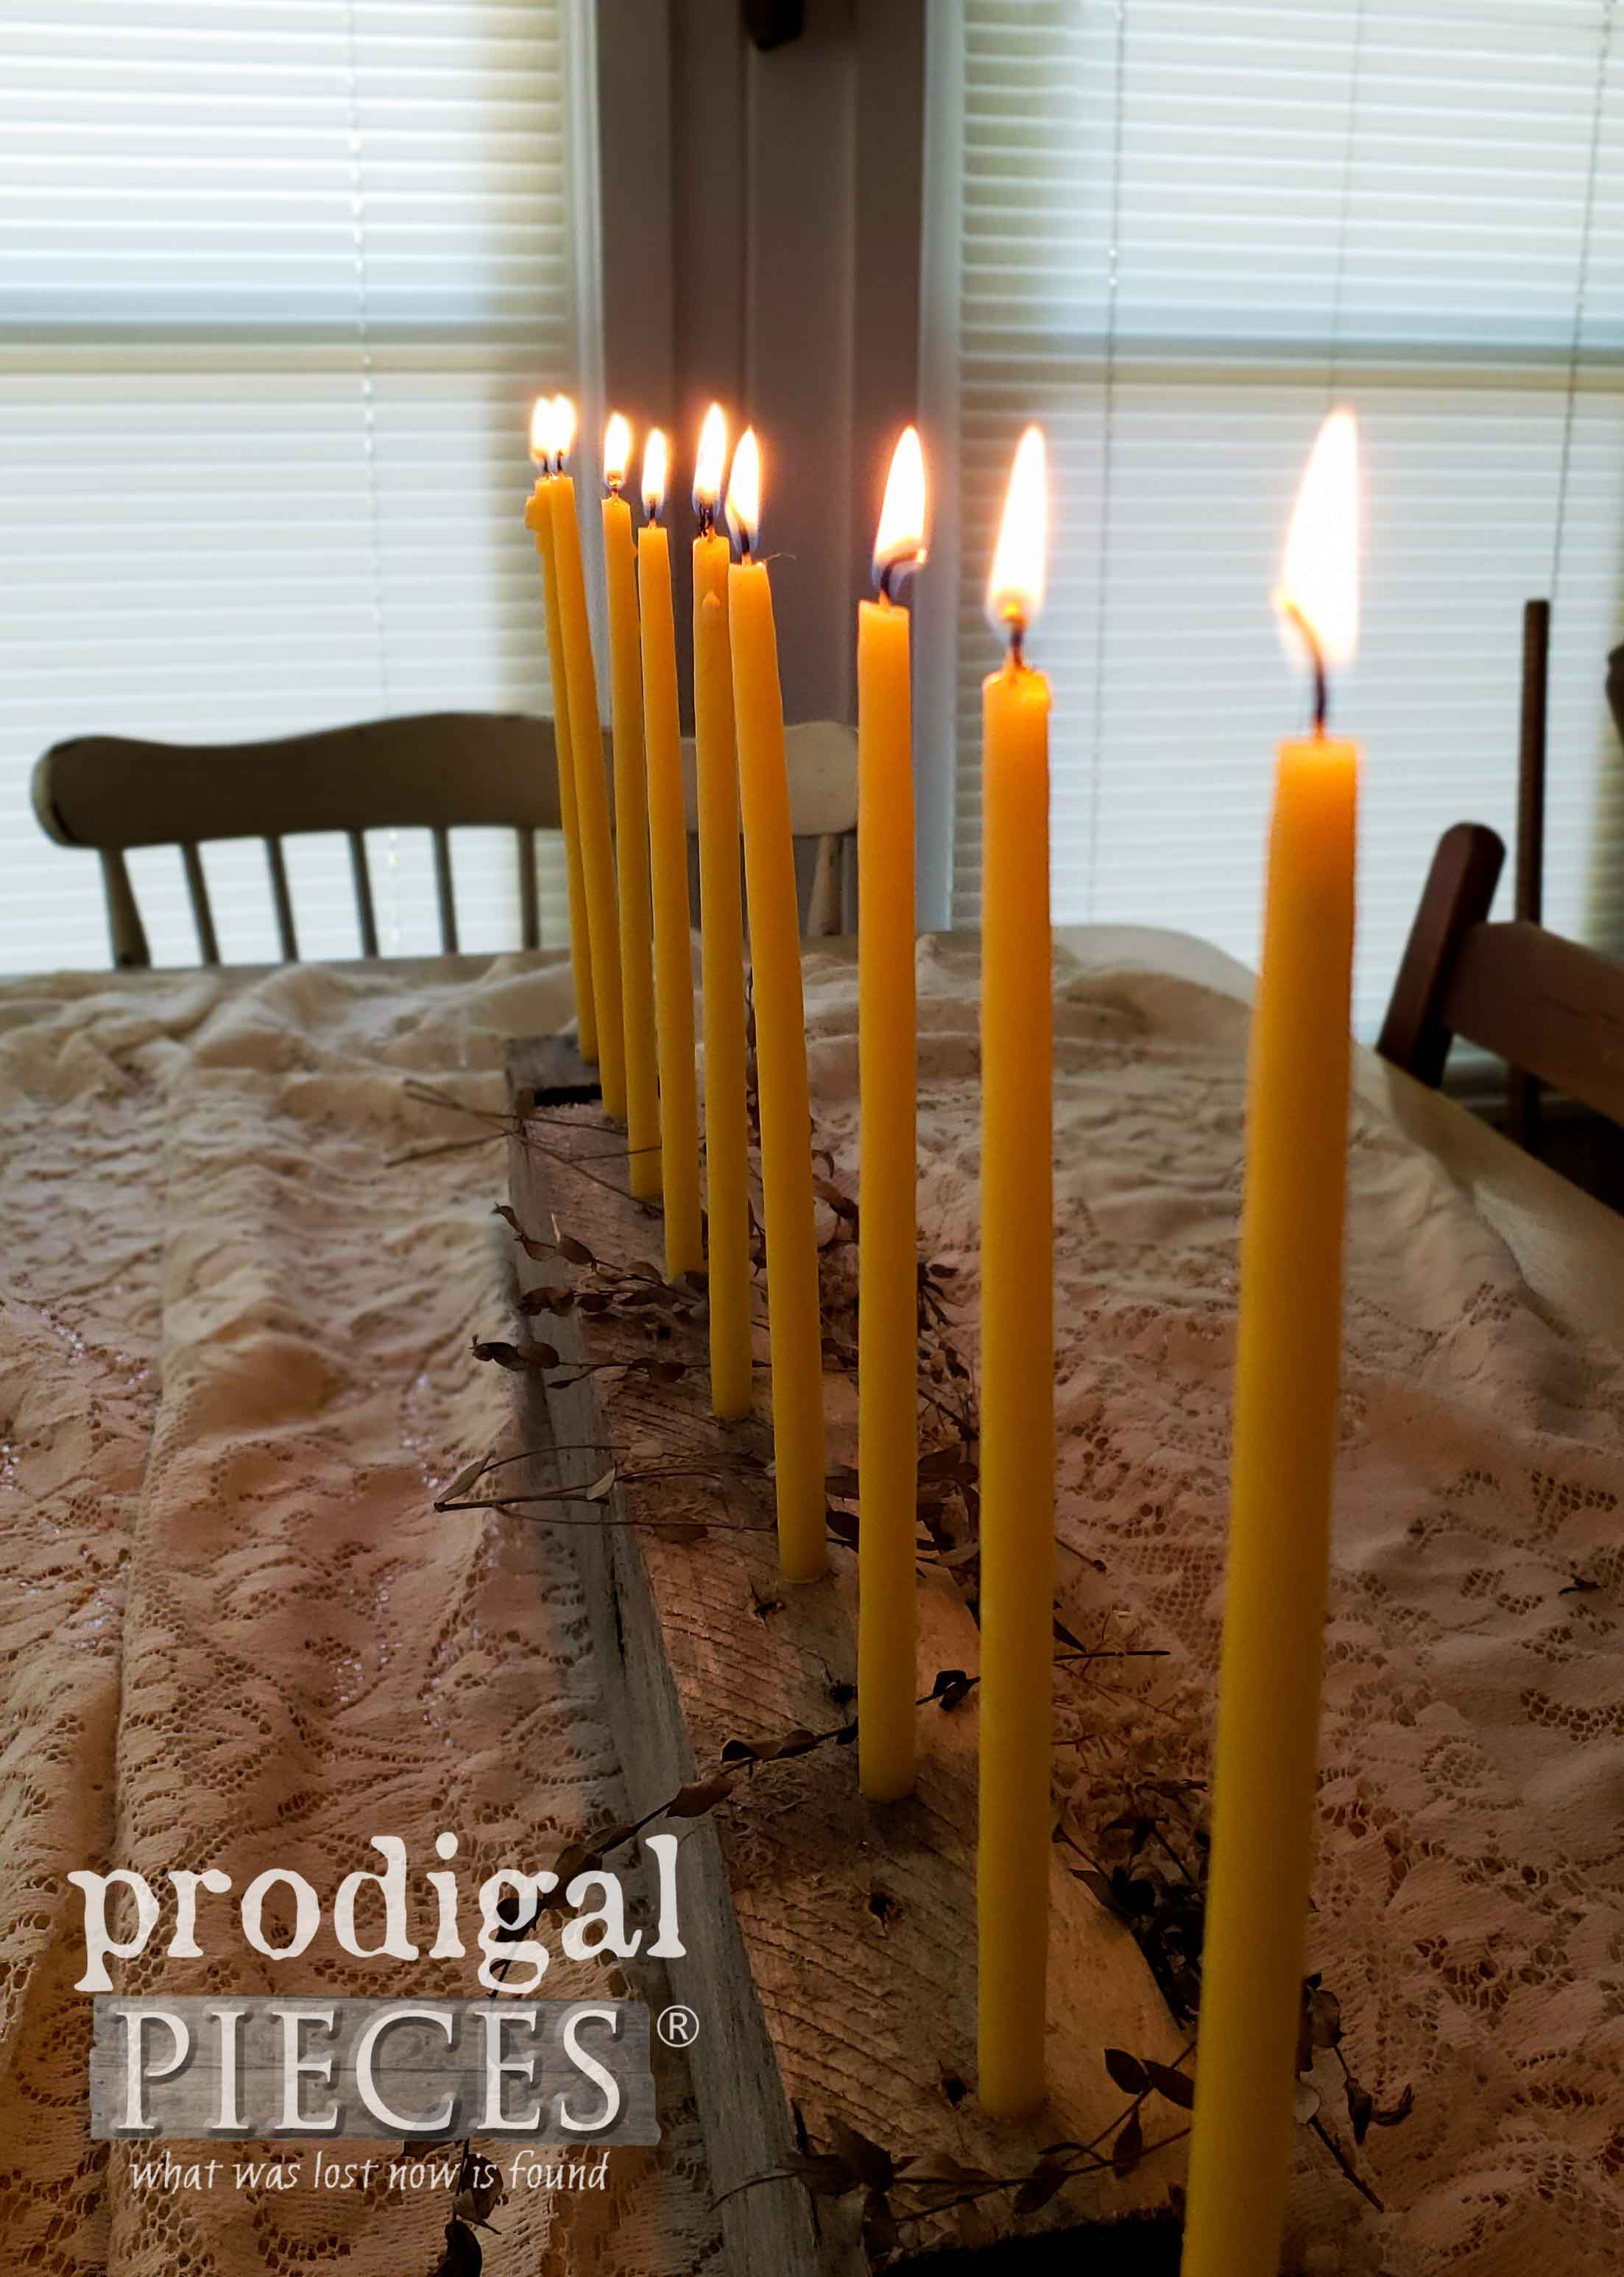 Handmade Beeswax Candles in Farmhouse Pallet Centerpiece by Prodigal Pieces | prodigalpieces.com #prodigalpieces #handmade #home #candles #farmhouse #homedecor